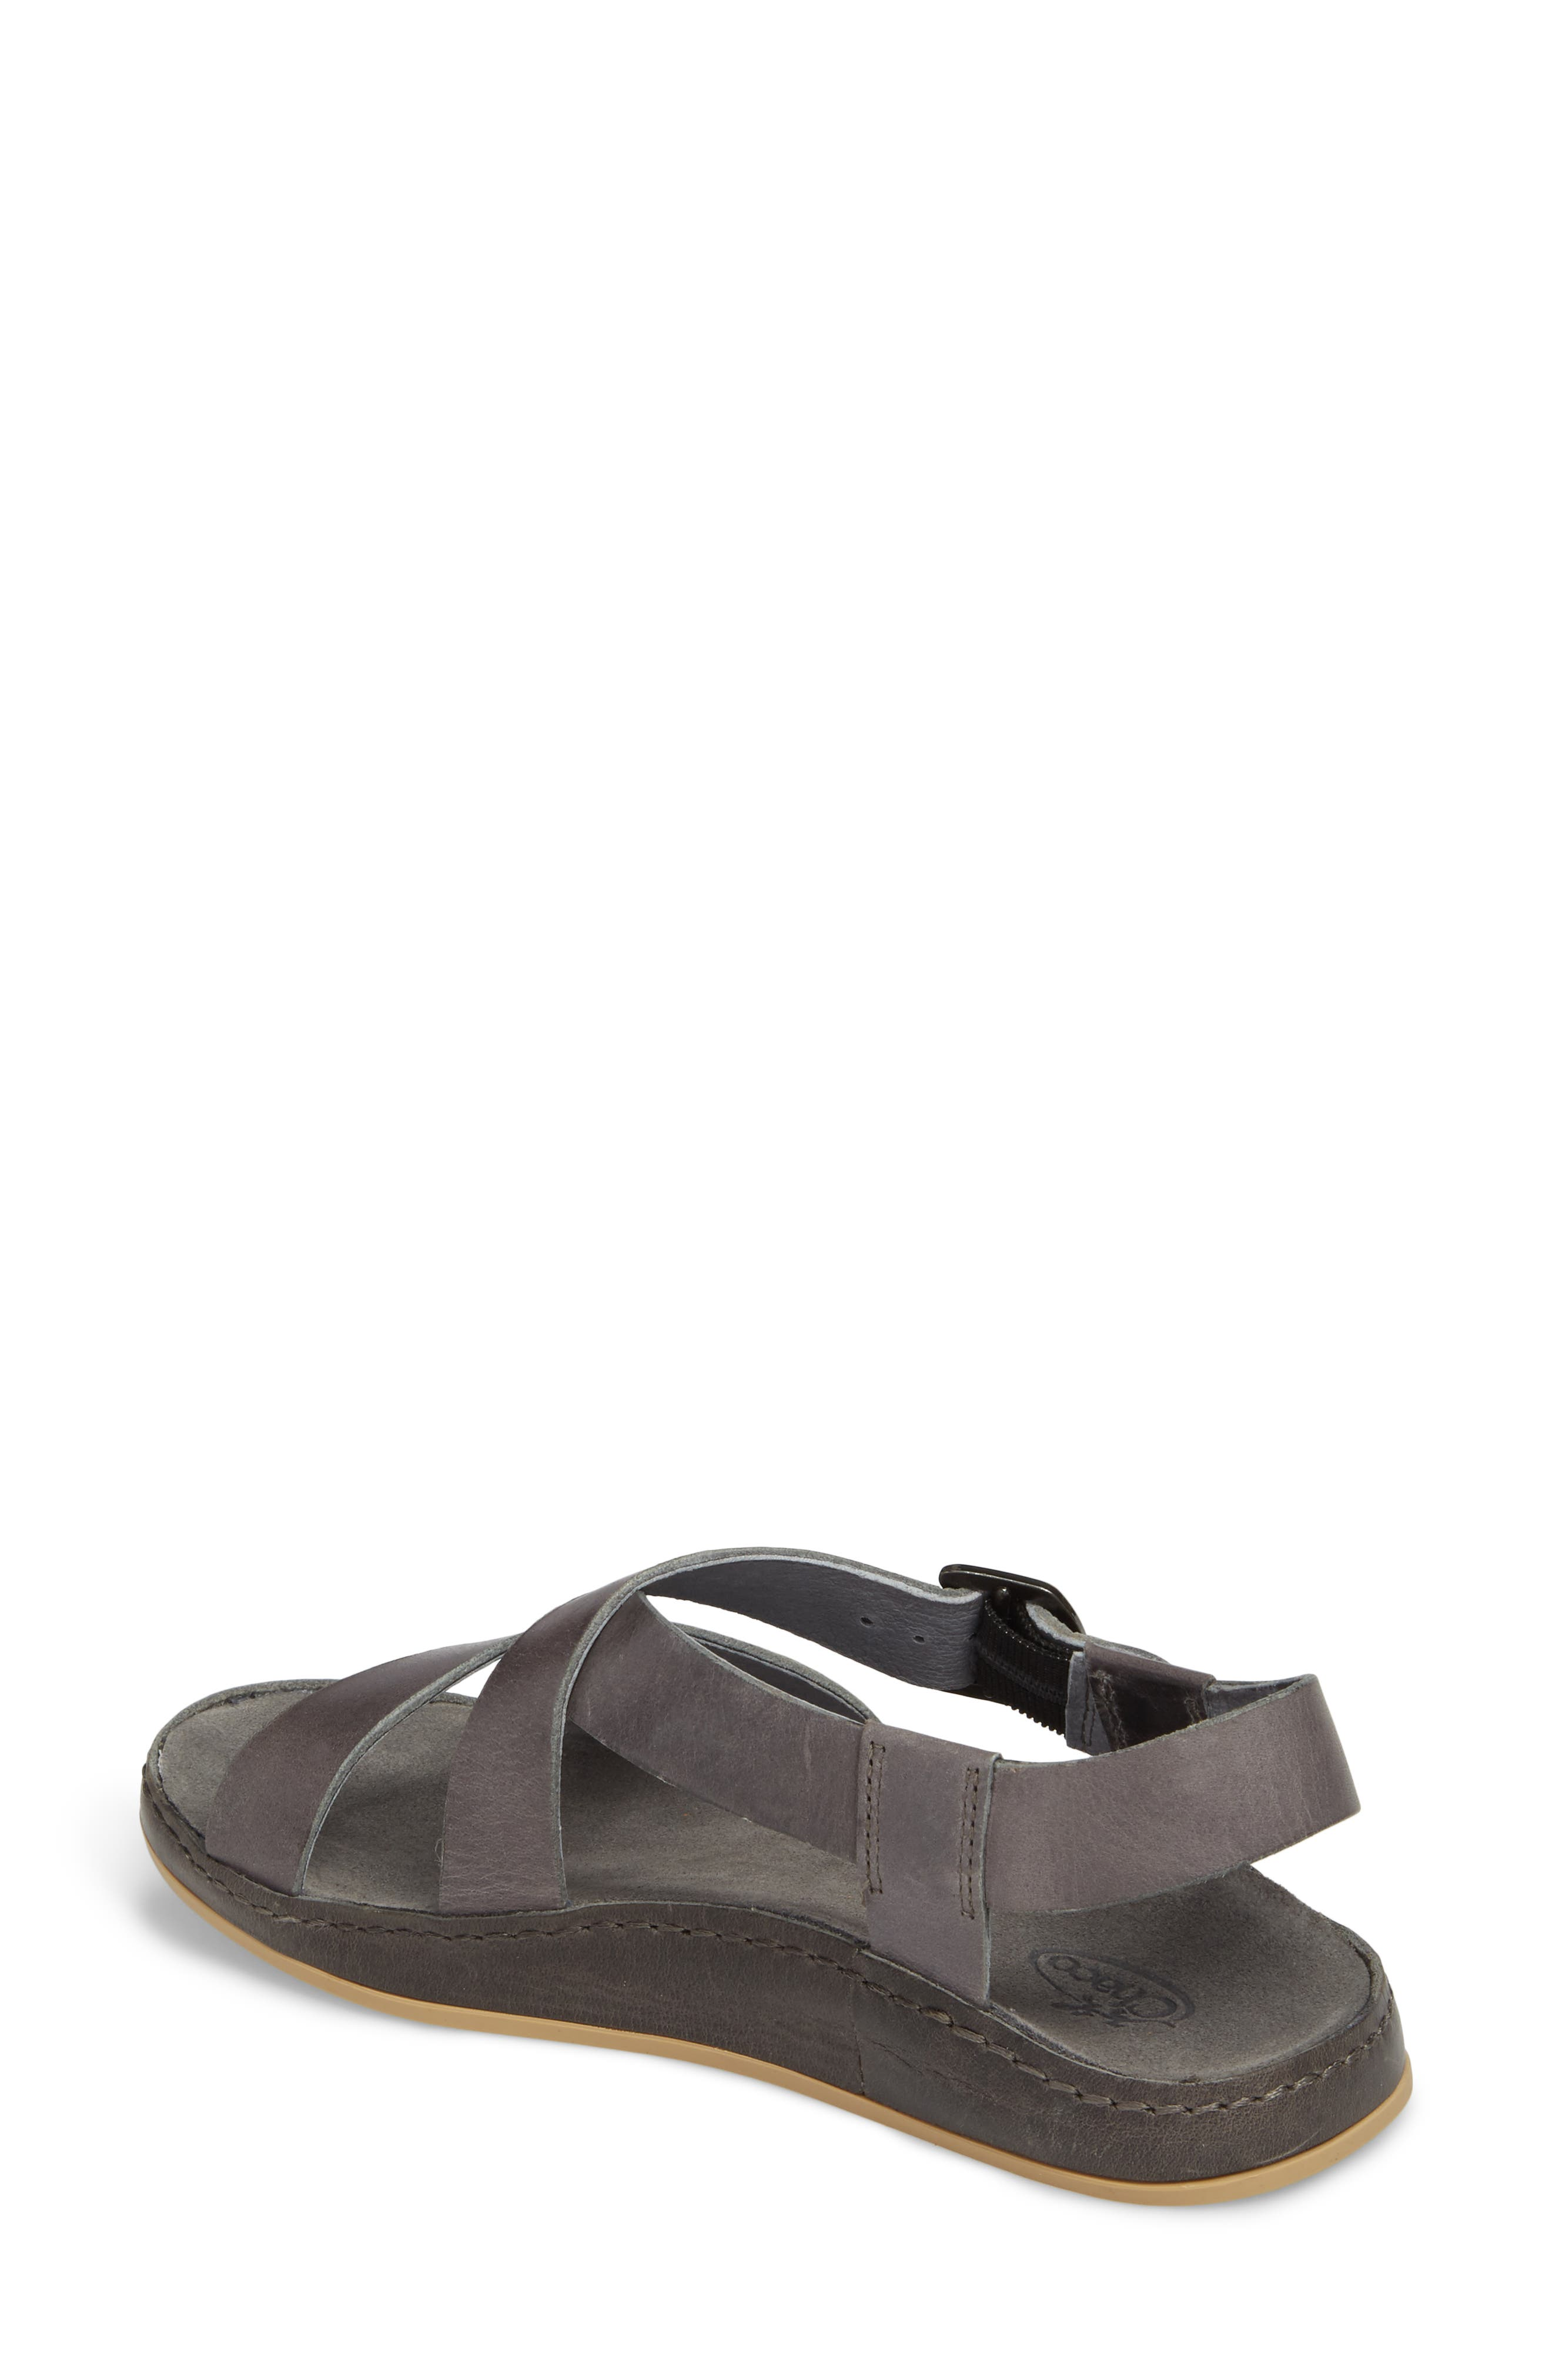 Strappy Sandal,                             Alternate thumbnail 2, color,                             GREY LEATHER